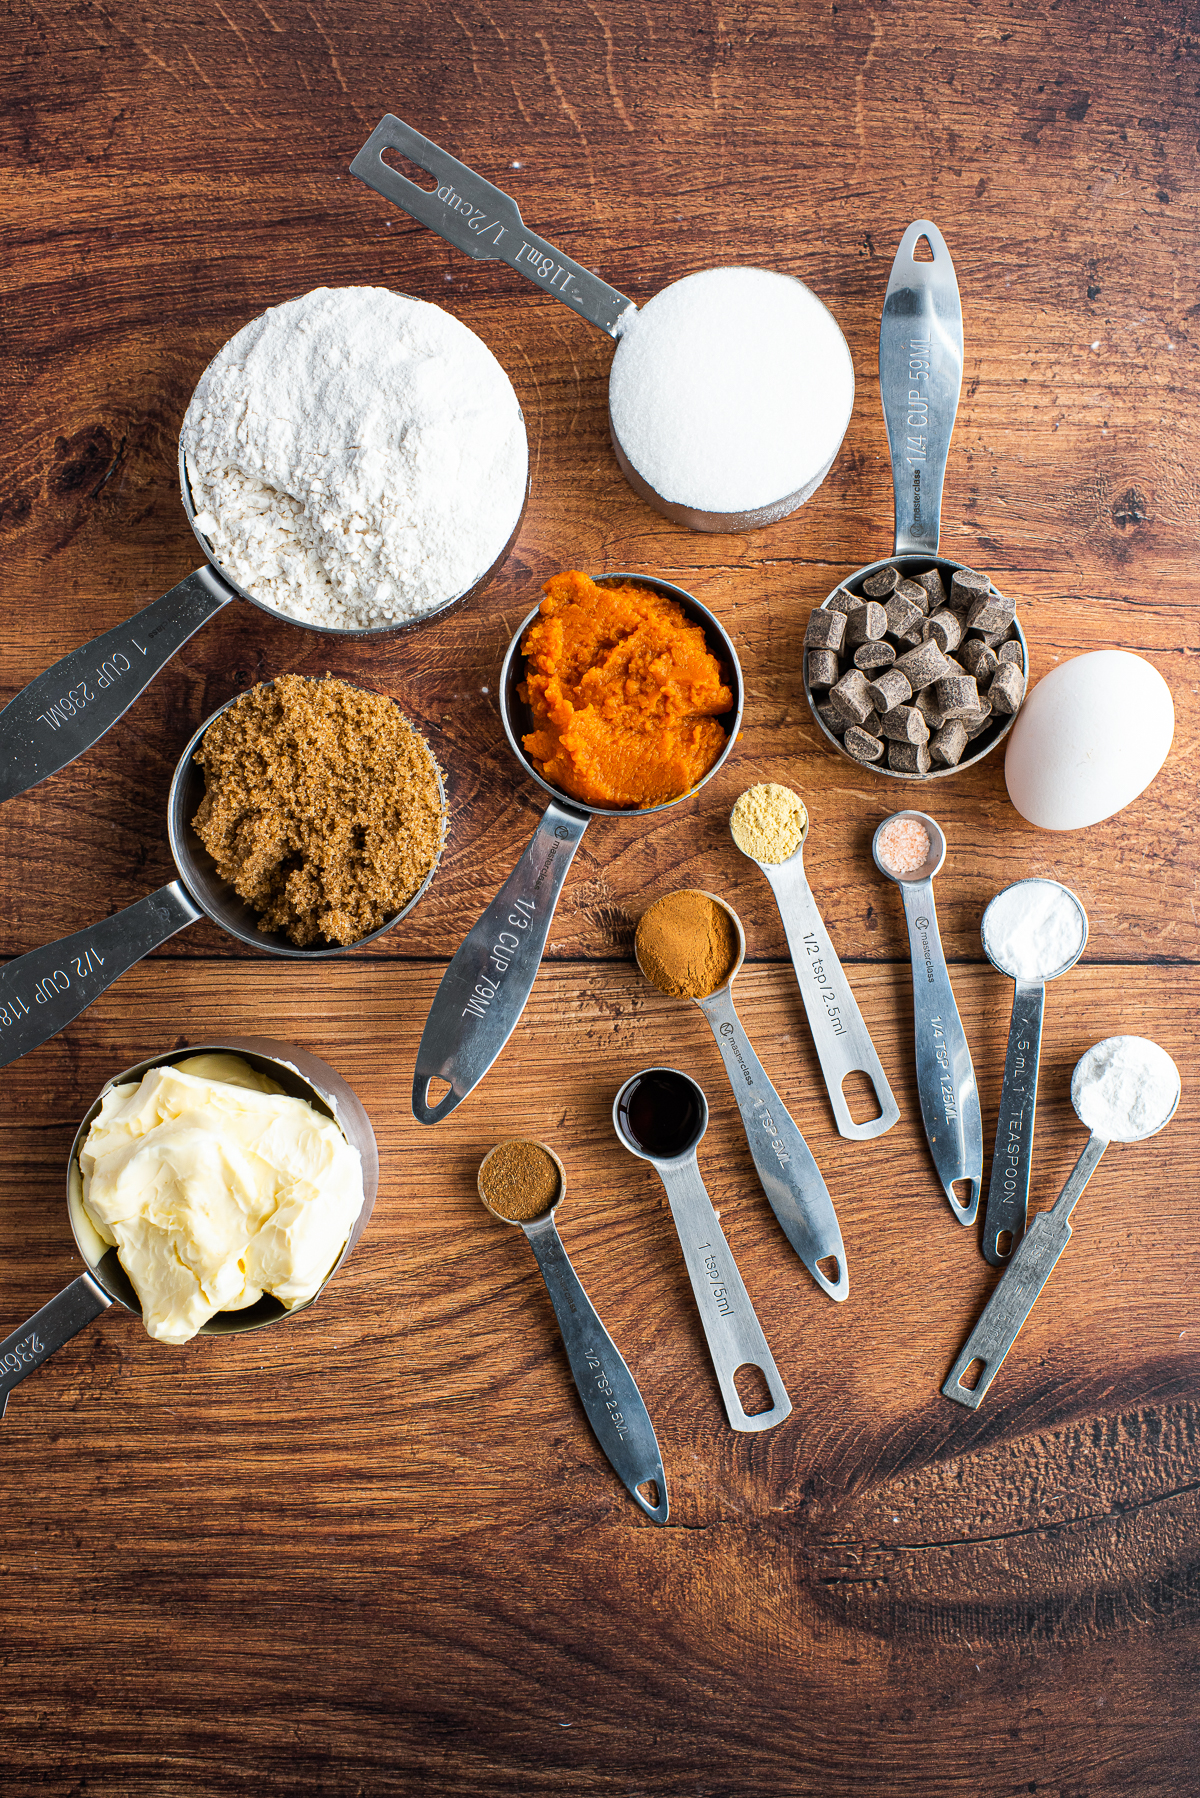 Ingredients needed to make a Pumpkin Chocolate Chip Cookie Recipe.